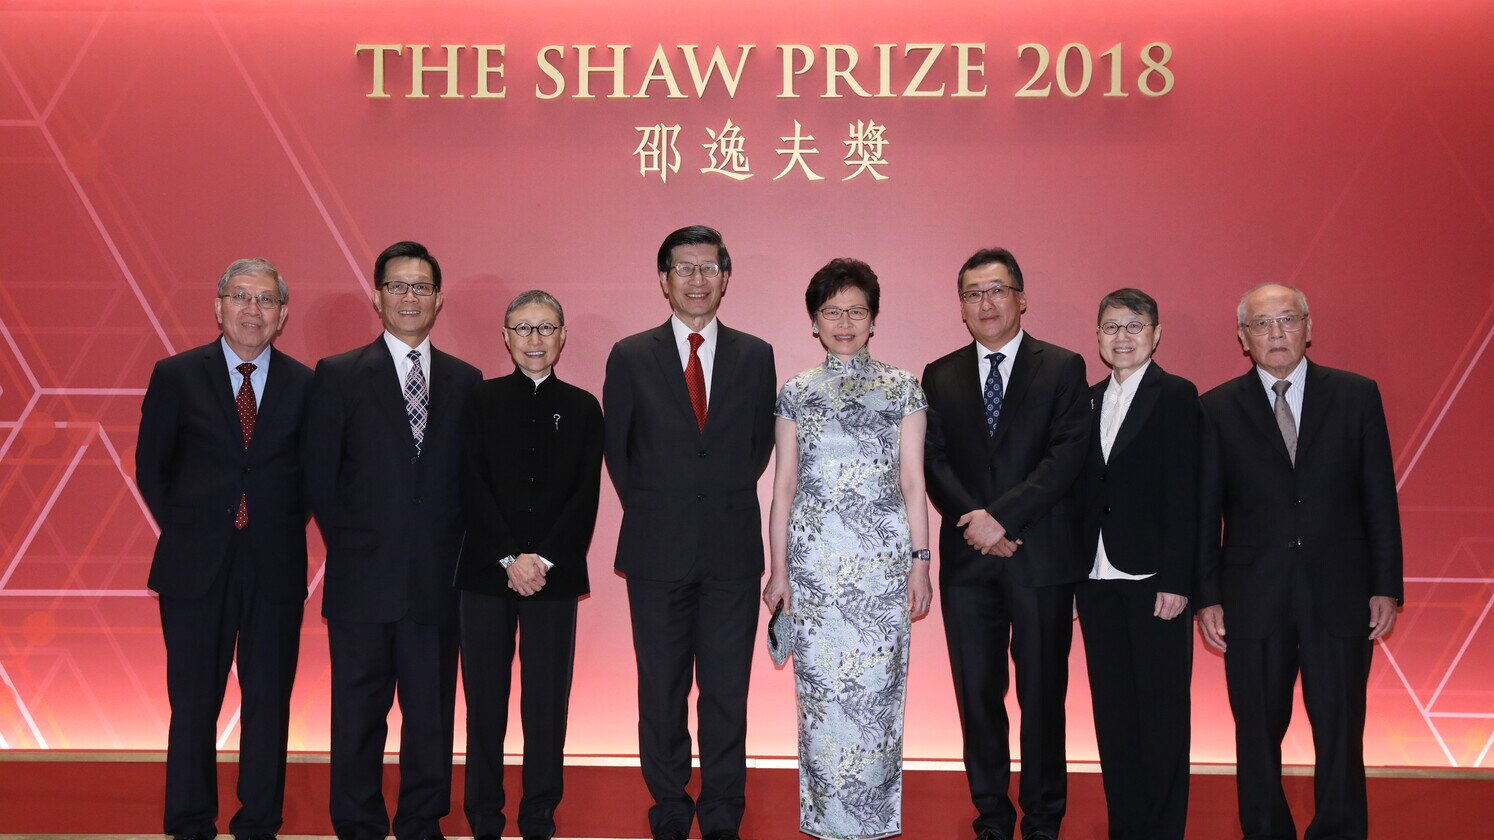 The Shaw Prize Award Presentation Ceremony 2018